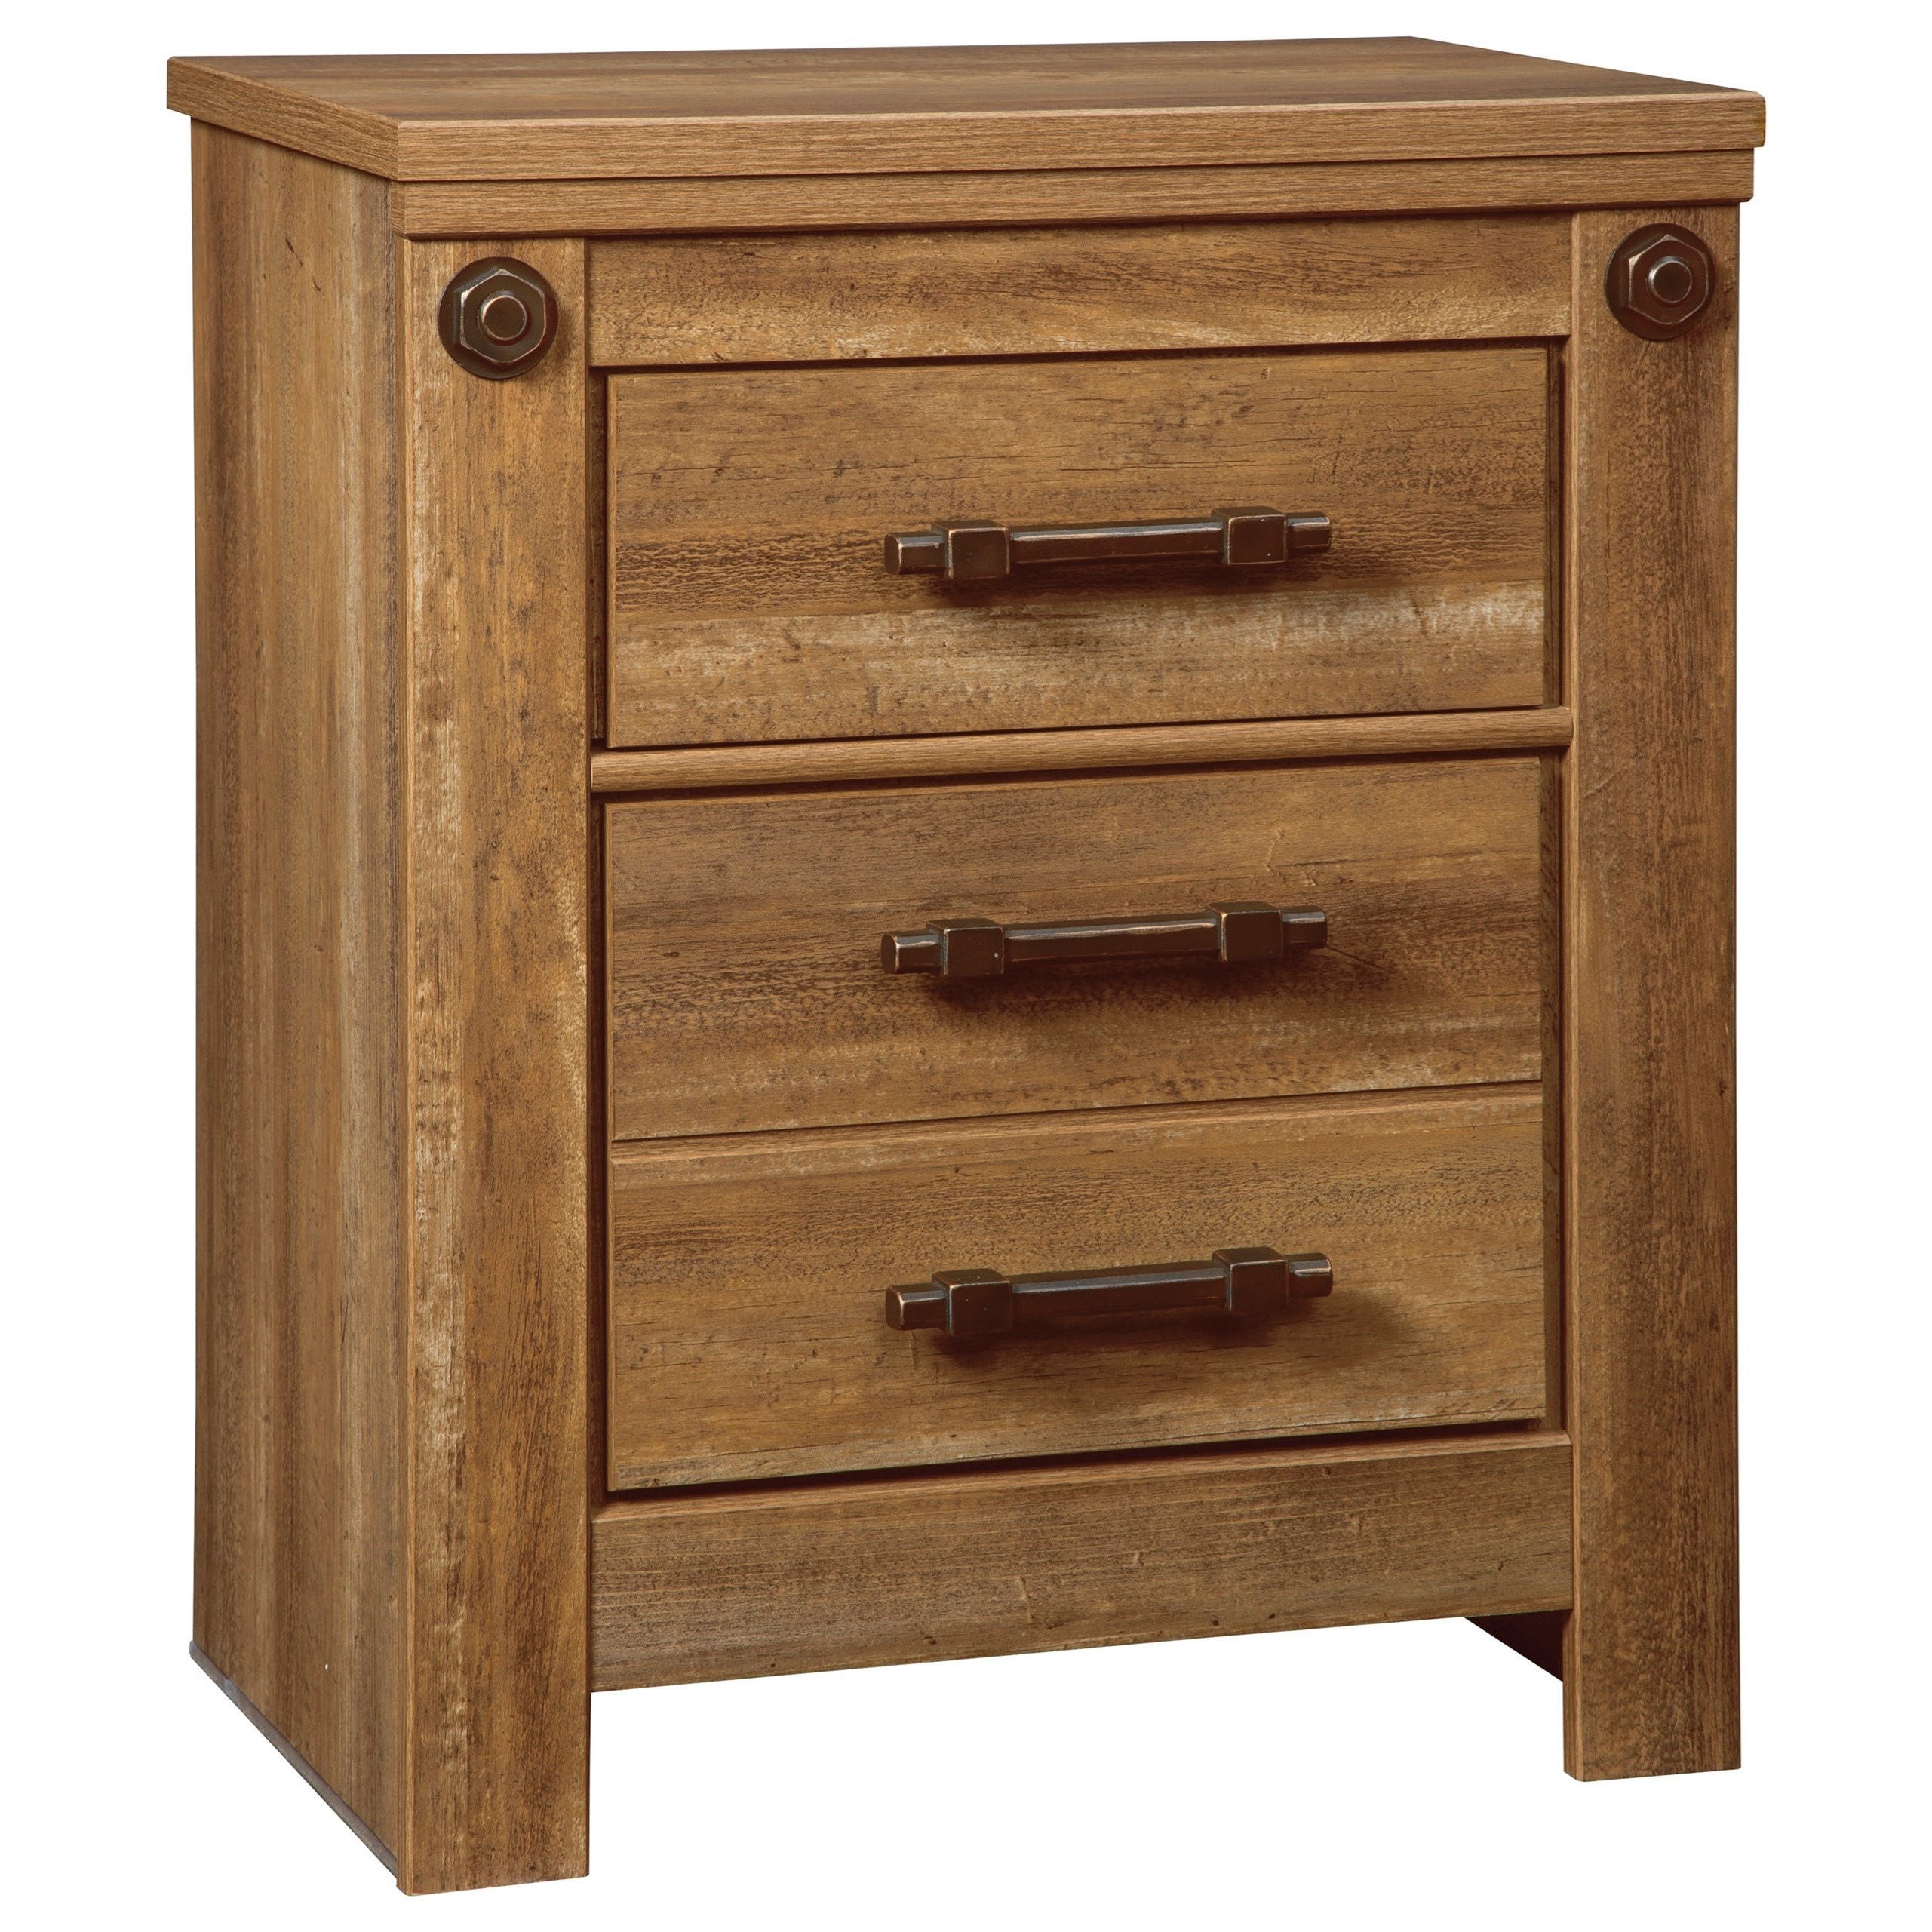 Signature Design by Ashley Ladimier Two Drawer Night Stand - Item Number: B399-92